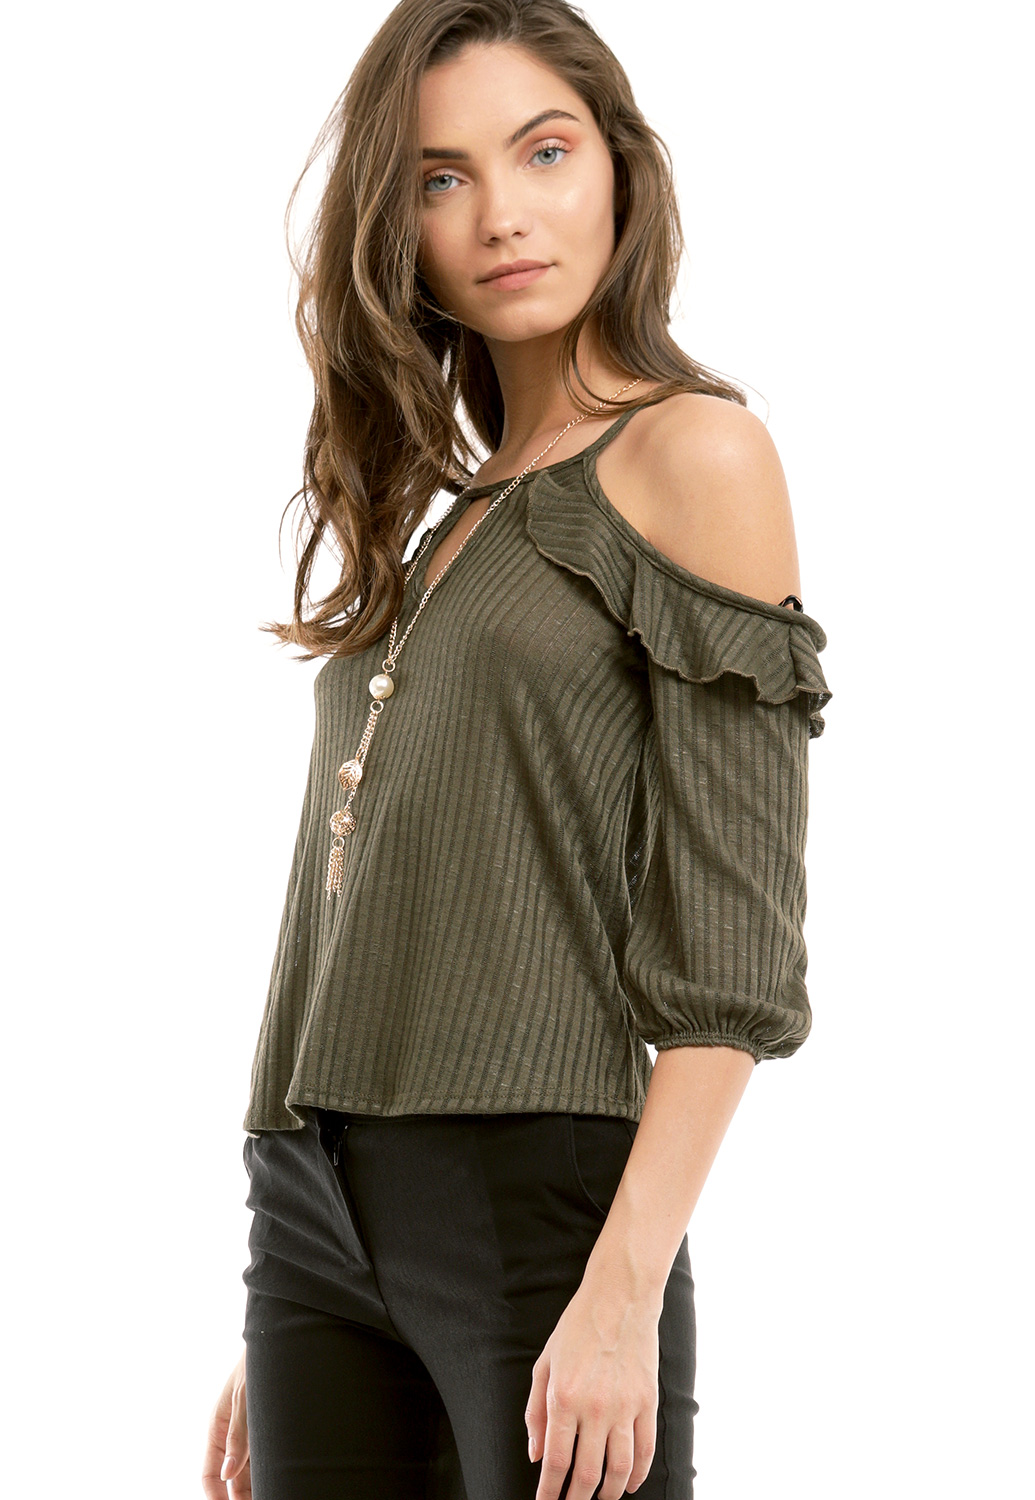 Open Shoulder Dressy Top W/ Necklace